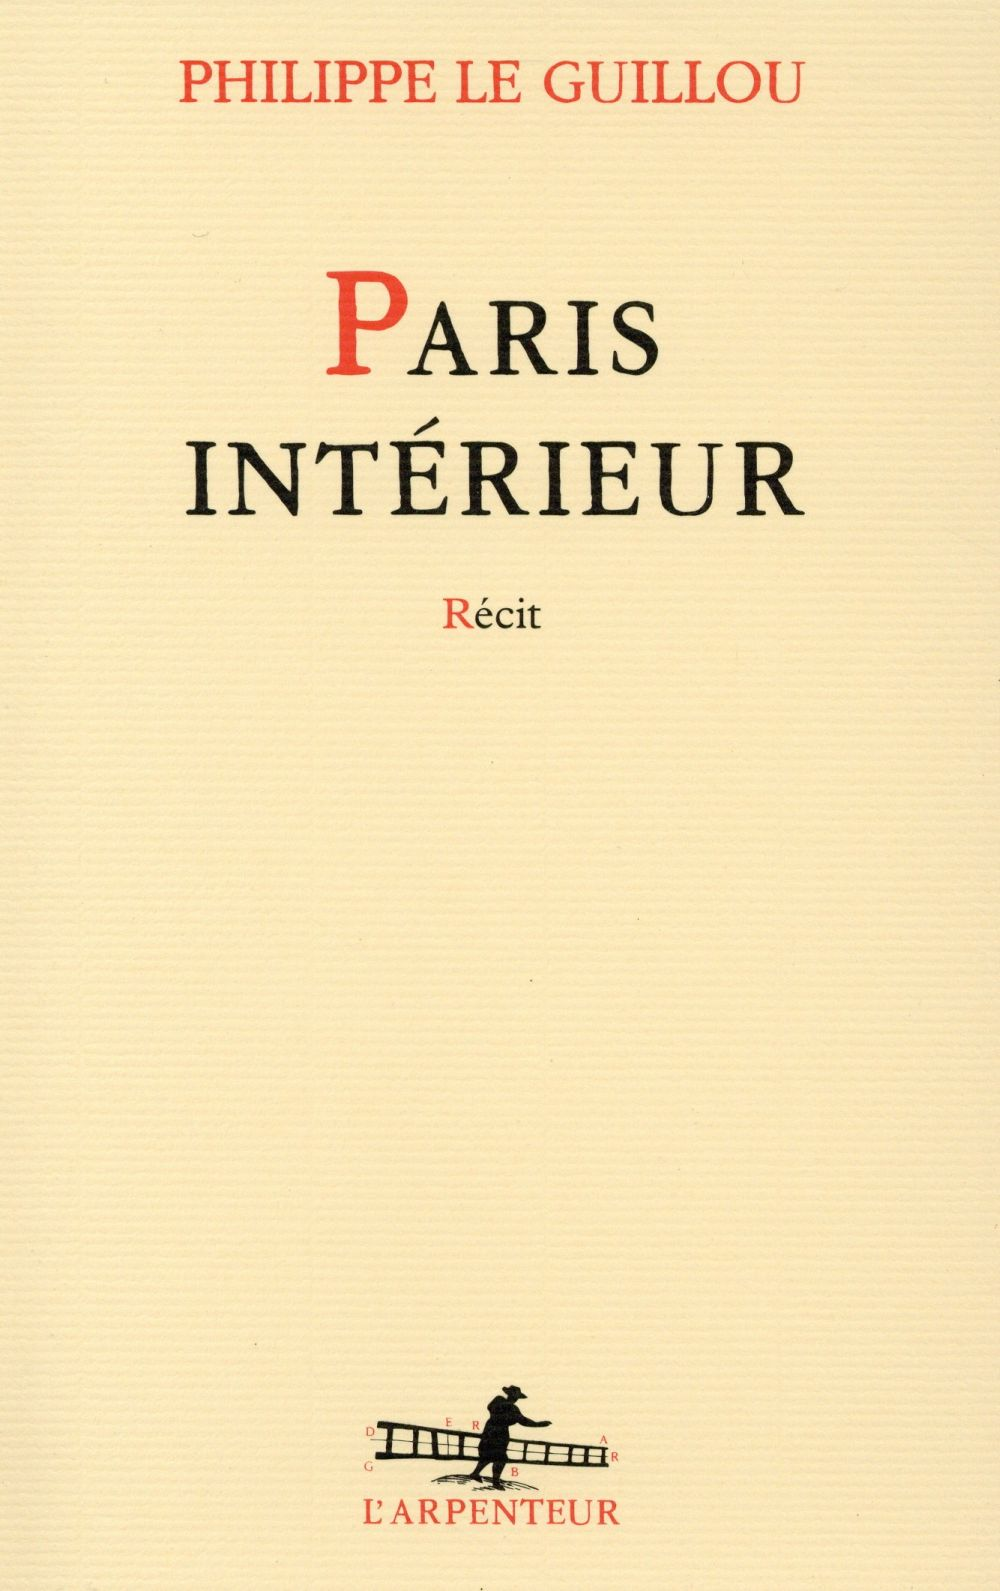 PARIS INTERIEUR